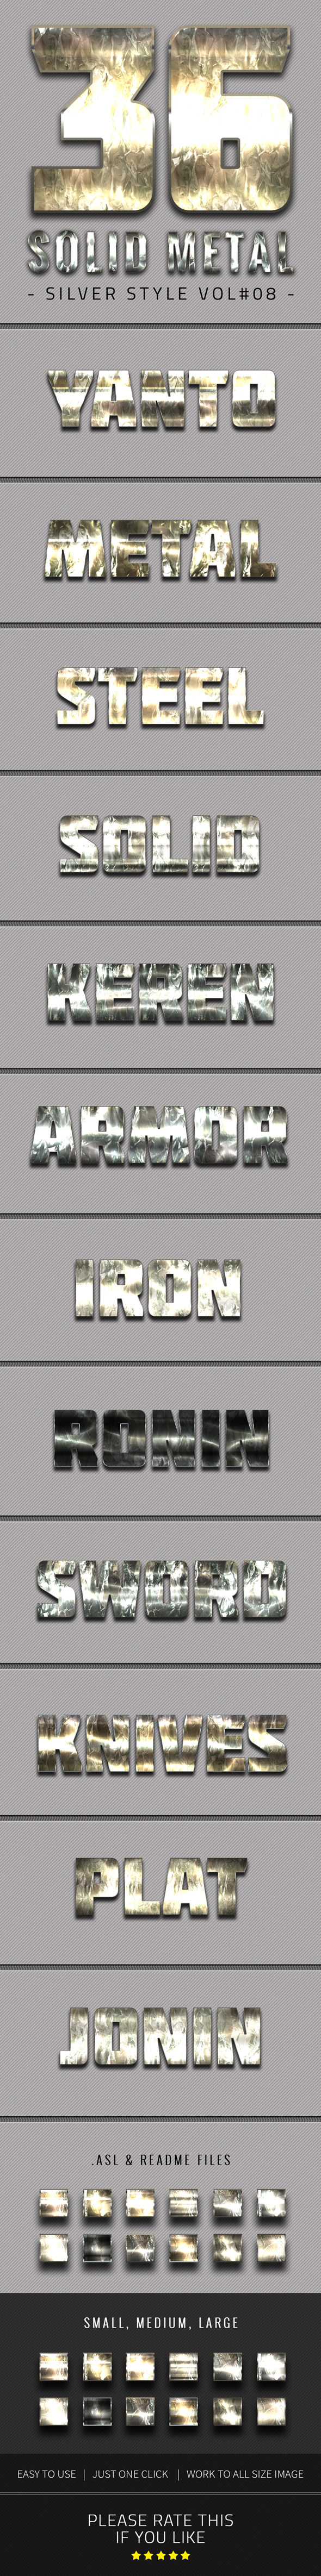 36 Solid Metal Text Effect V08 - Text Effects Styles